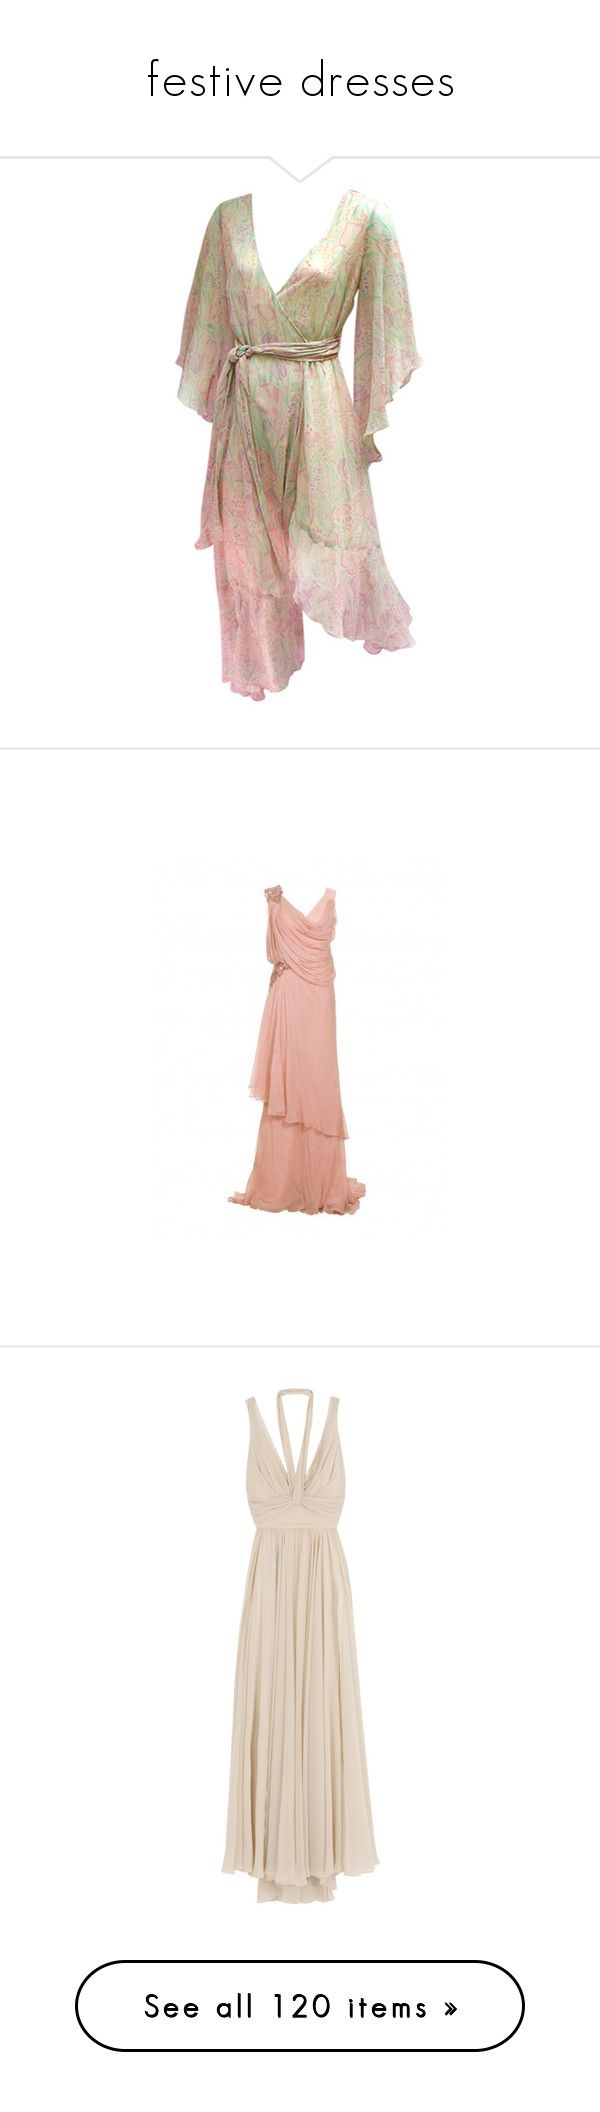 """""""festive dresses"""" by pantherinae on Polyvore featuring dress, dresses, festive, abiti, gown, wrap dress, brown wrap dress, boho chic dresses, brown dress and floral dresses"""